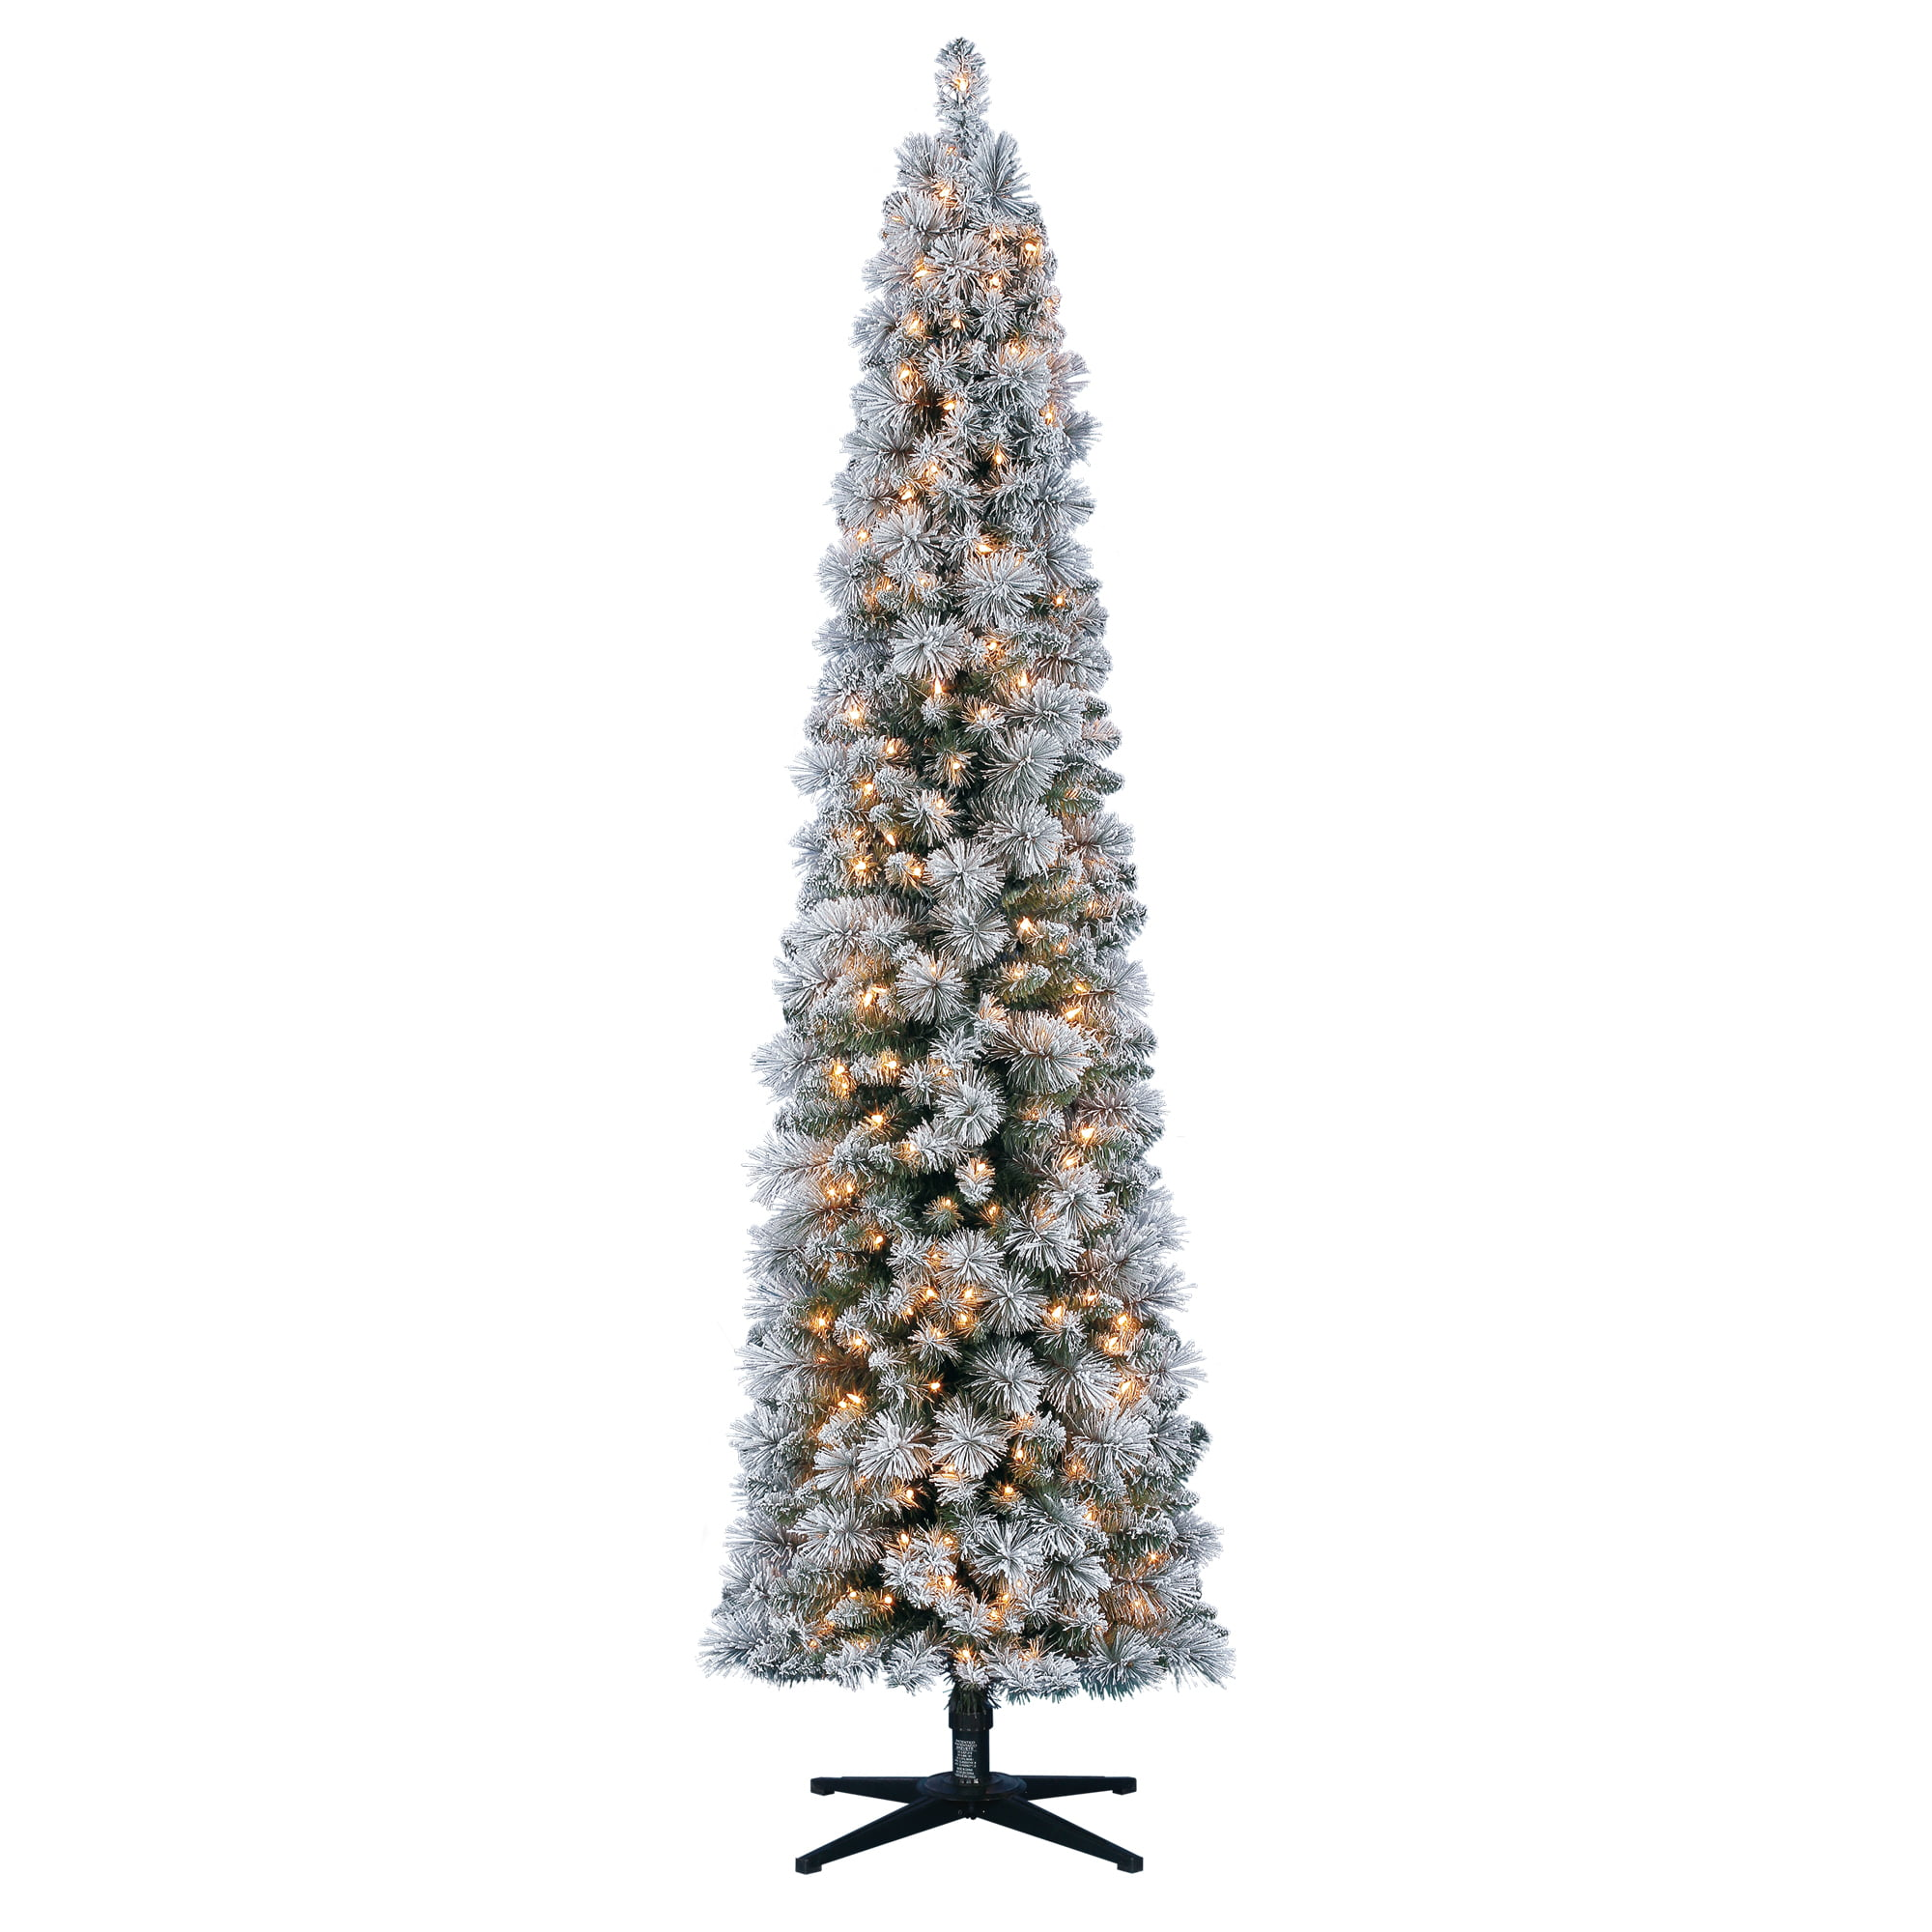 Holiday Time Flocked Pencil Christmas Tree 7 Ft White On Green Walmart Com Walmart Com